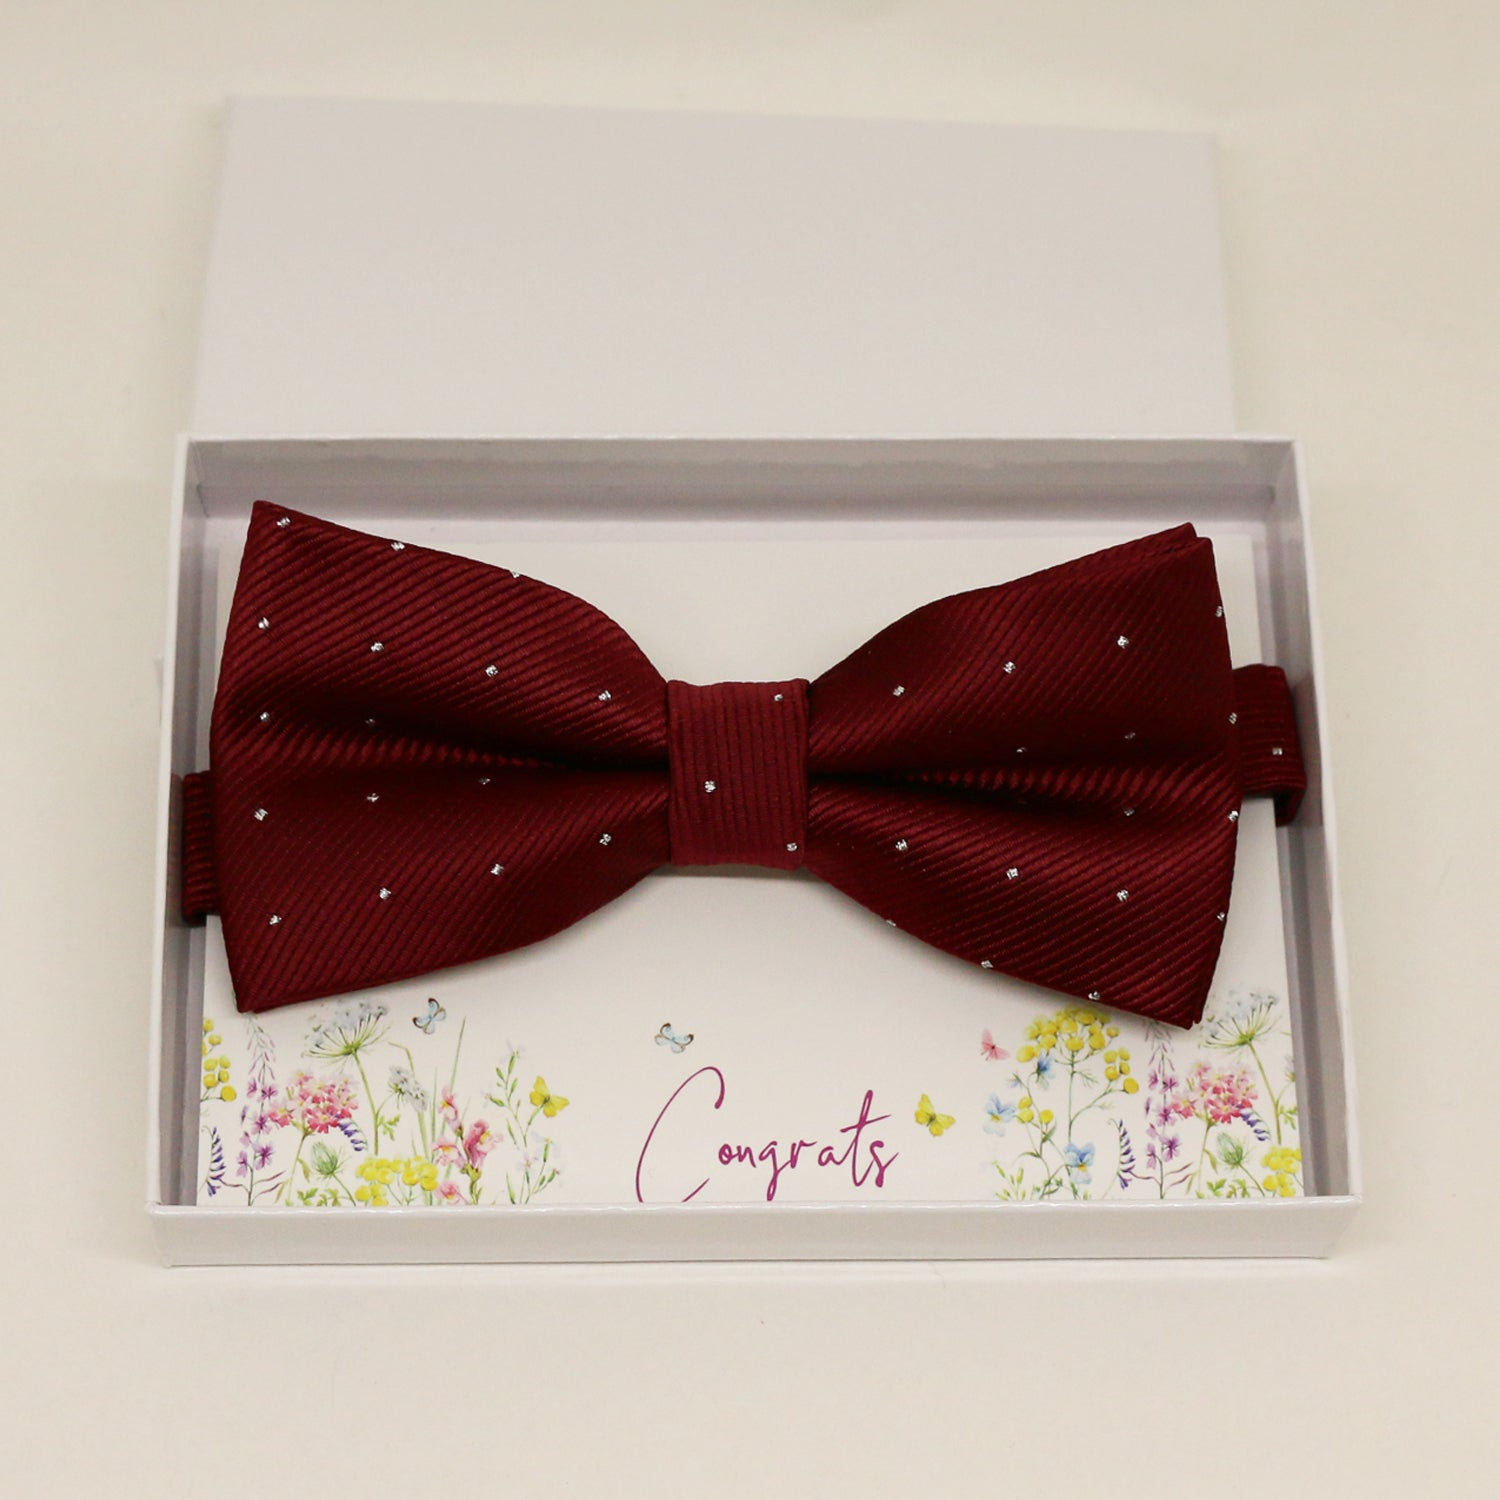 Burgundy bow tie, Best man request gift, Congratulations, Best man request gift, congrats, thank you, Happy birthday card, Ring bearer bow